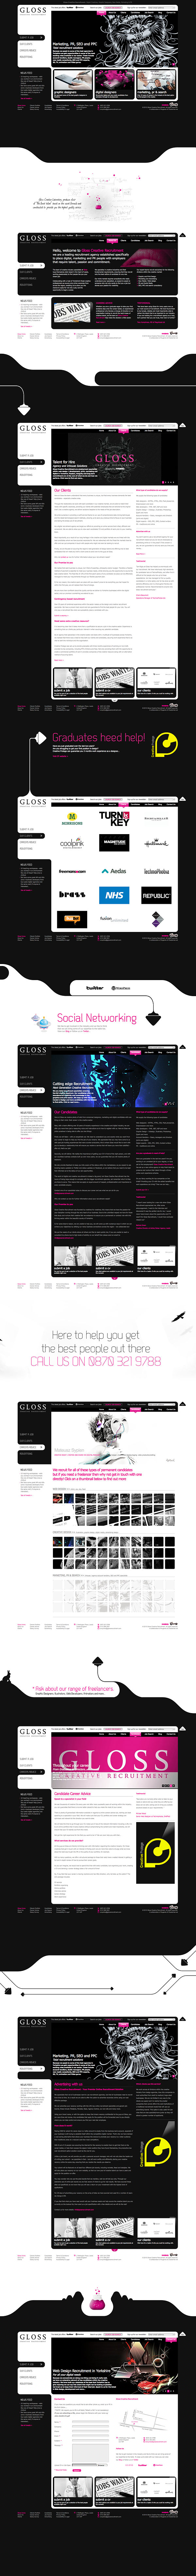 Web Design > Gloss Creative Recruitment